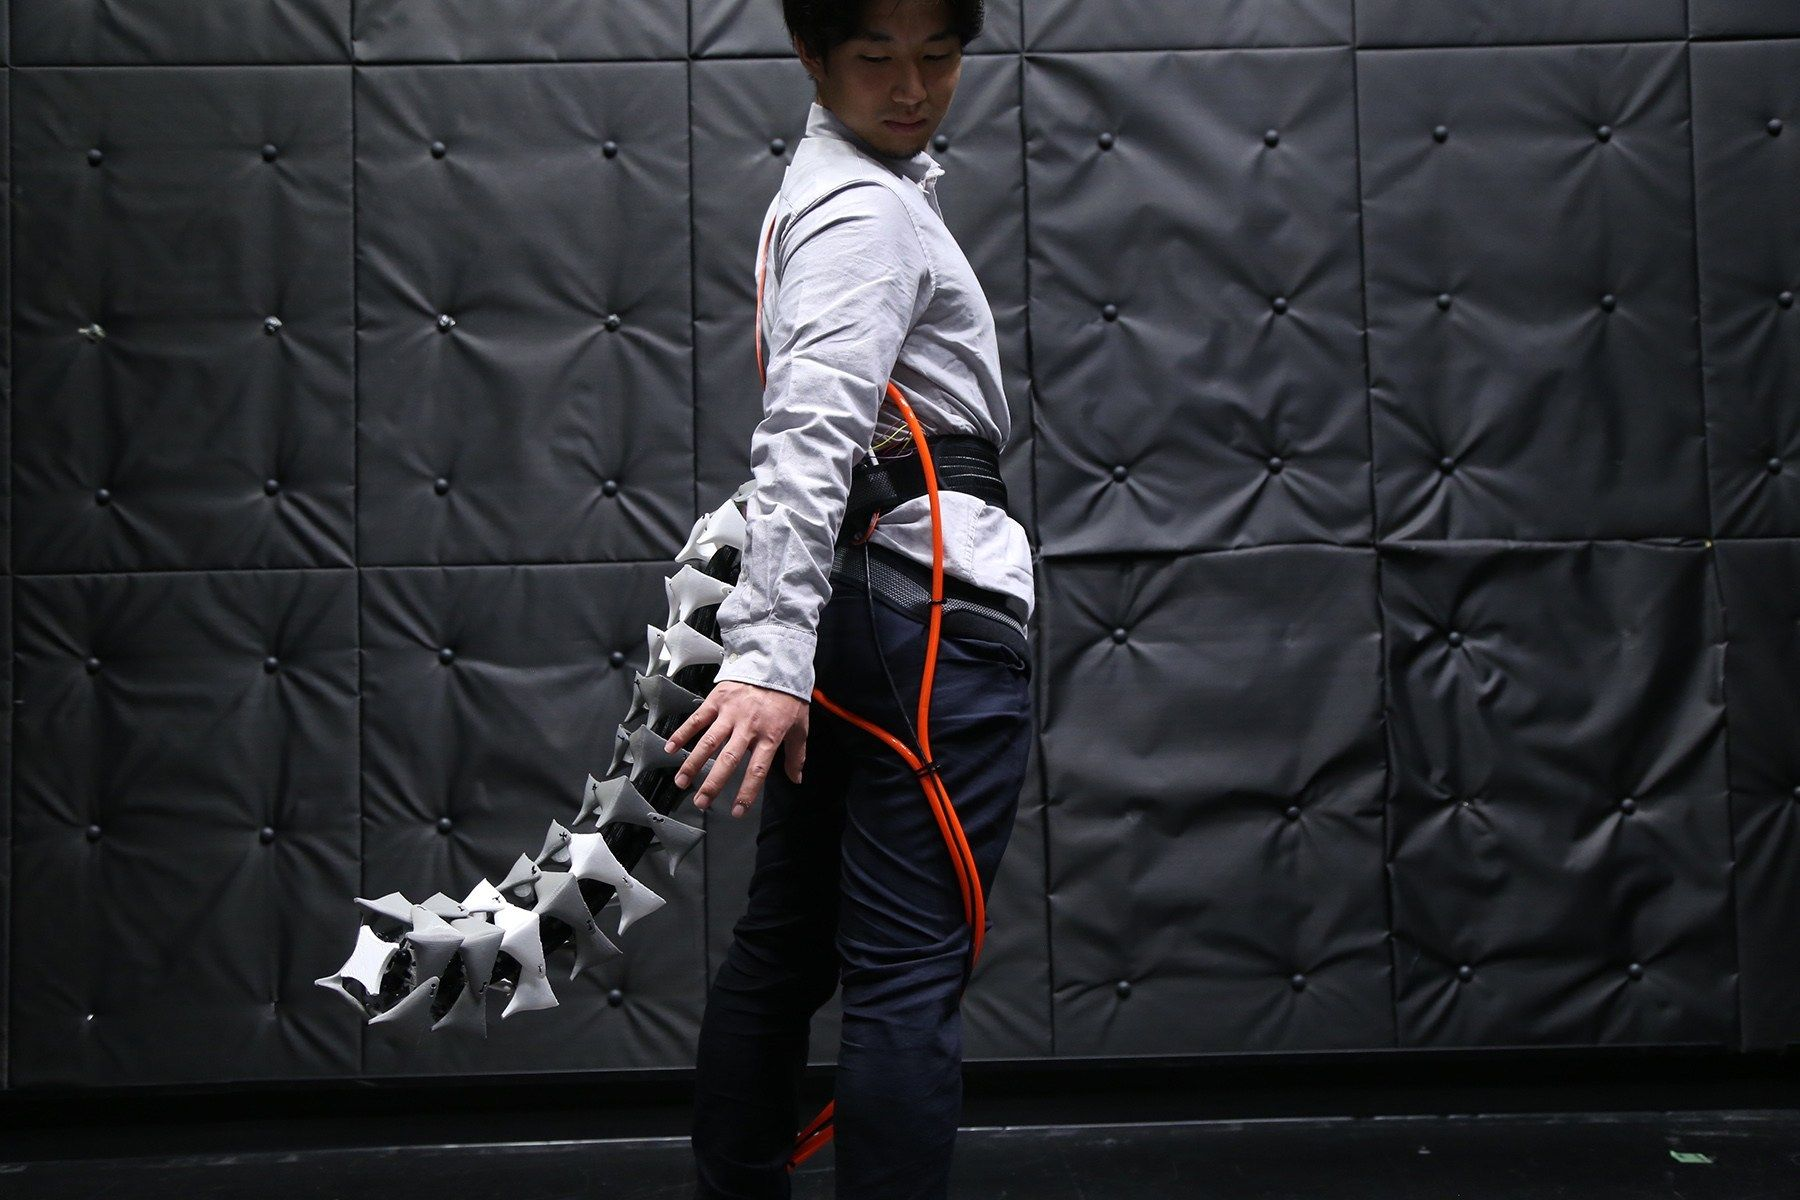 This Wearable Robot Tail Will Help You Balance